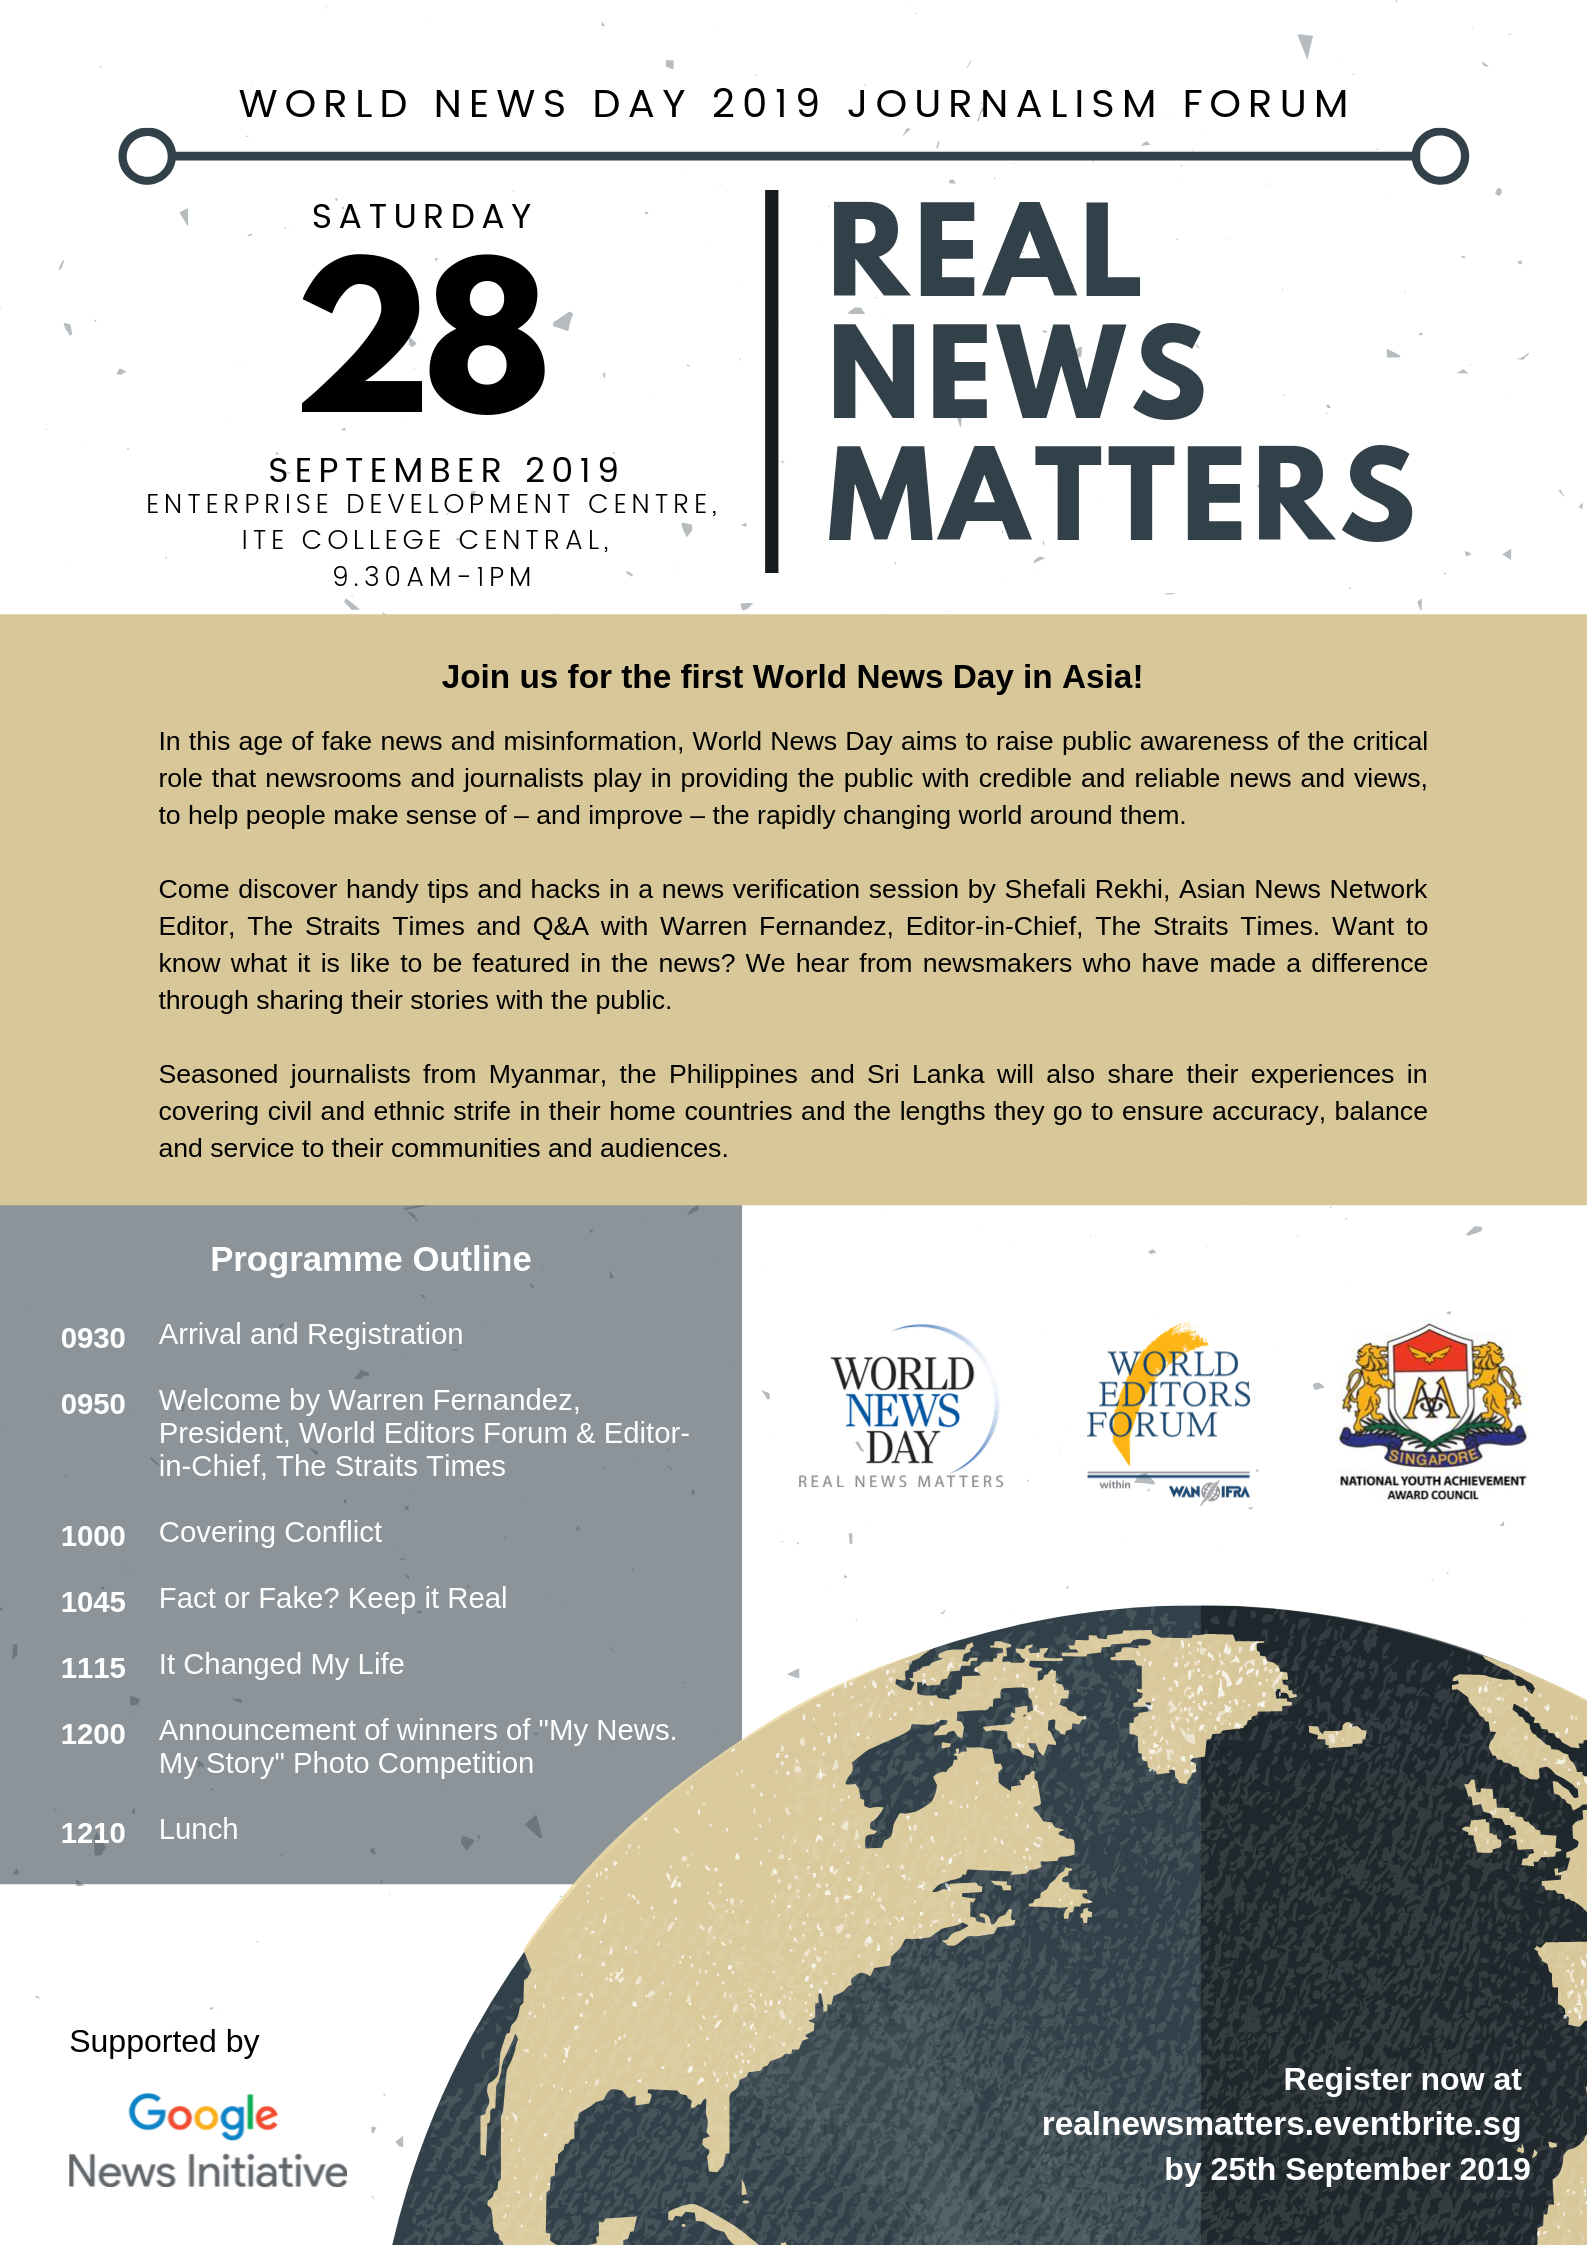 Journalism Forum: Real News Matters – World News Day